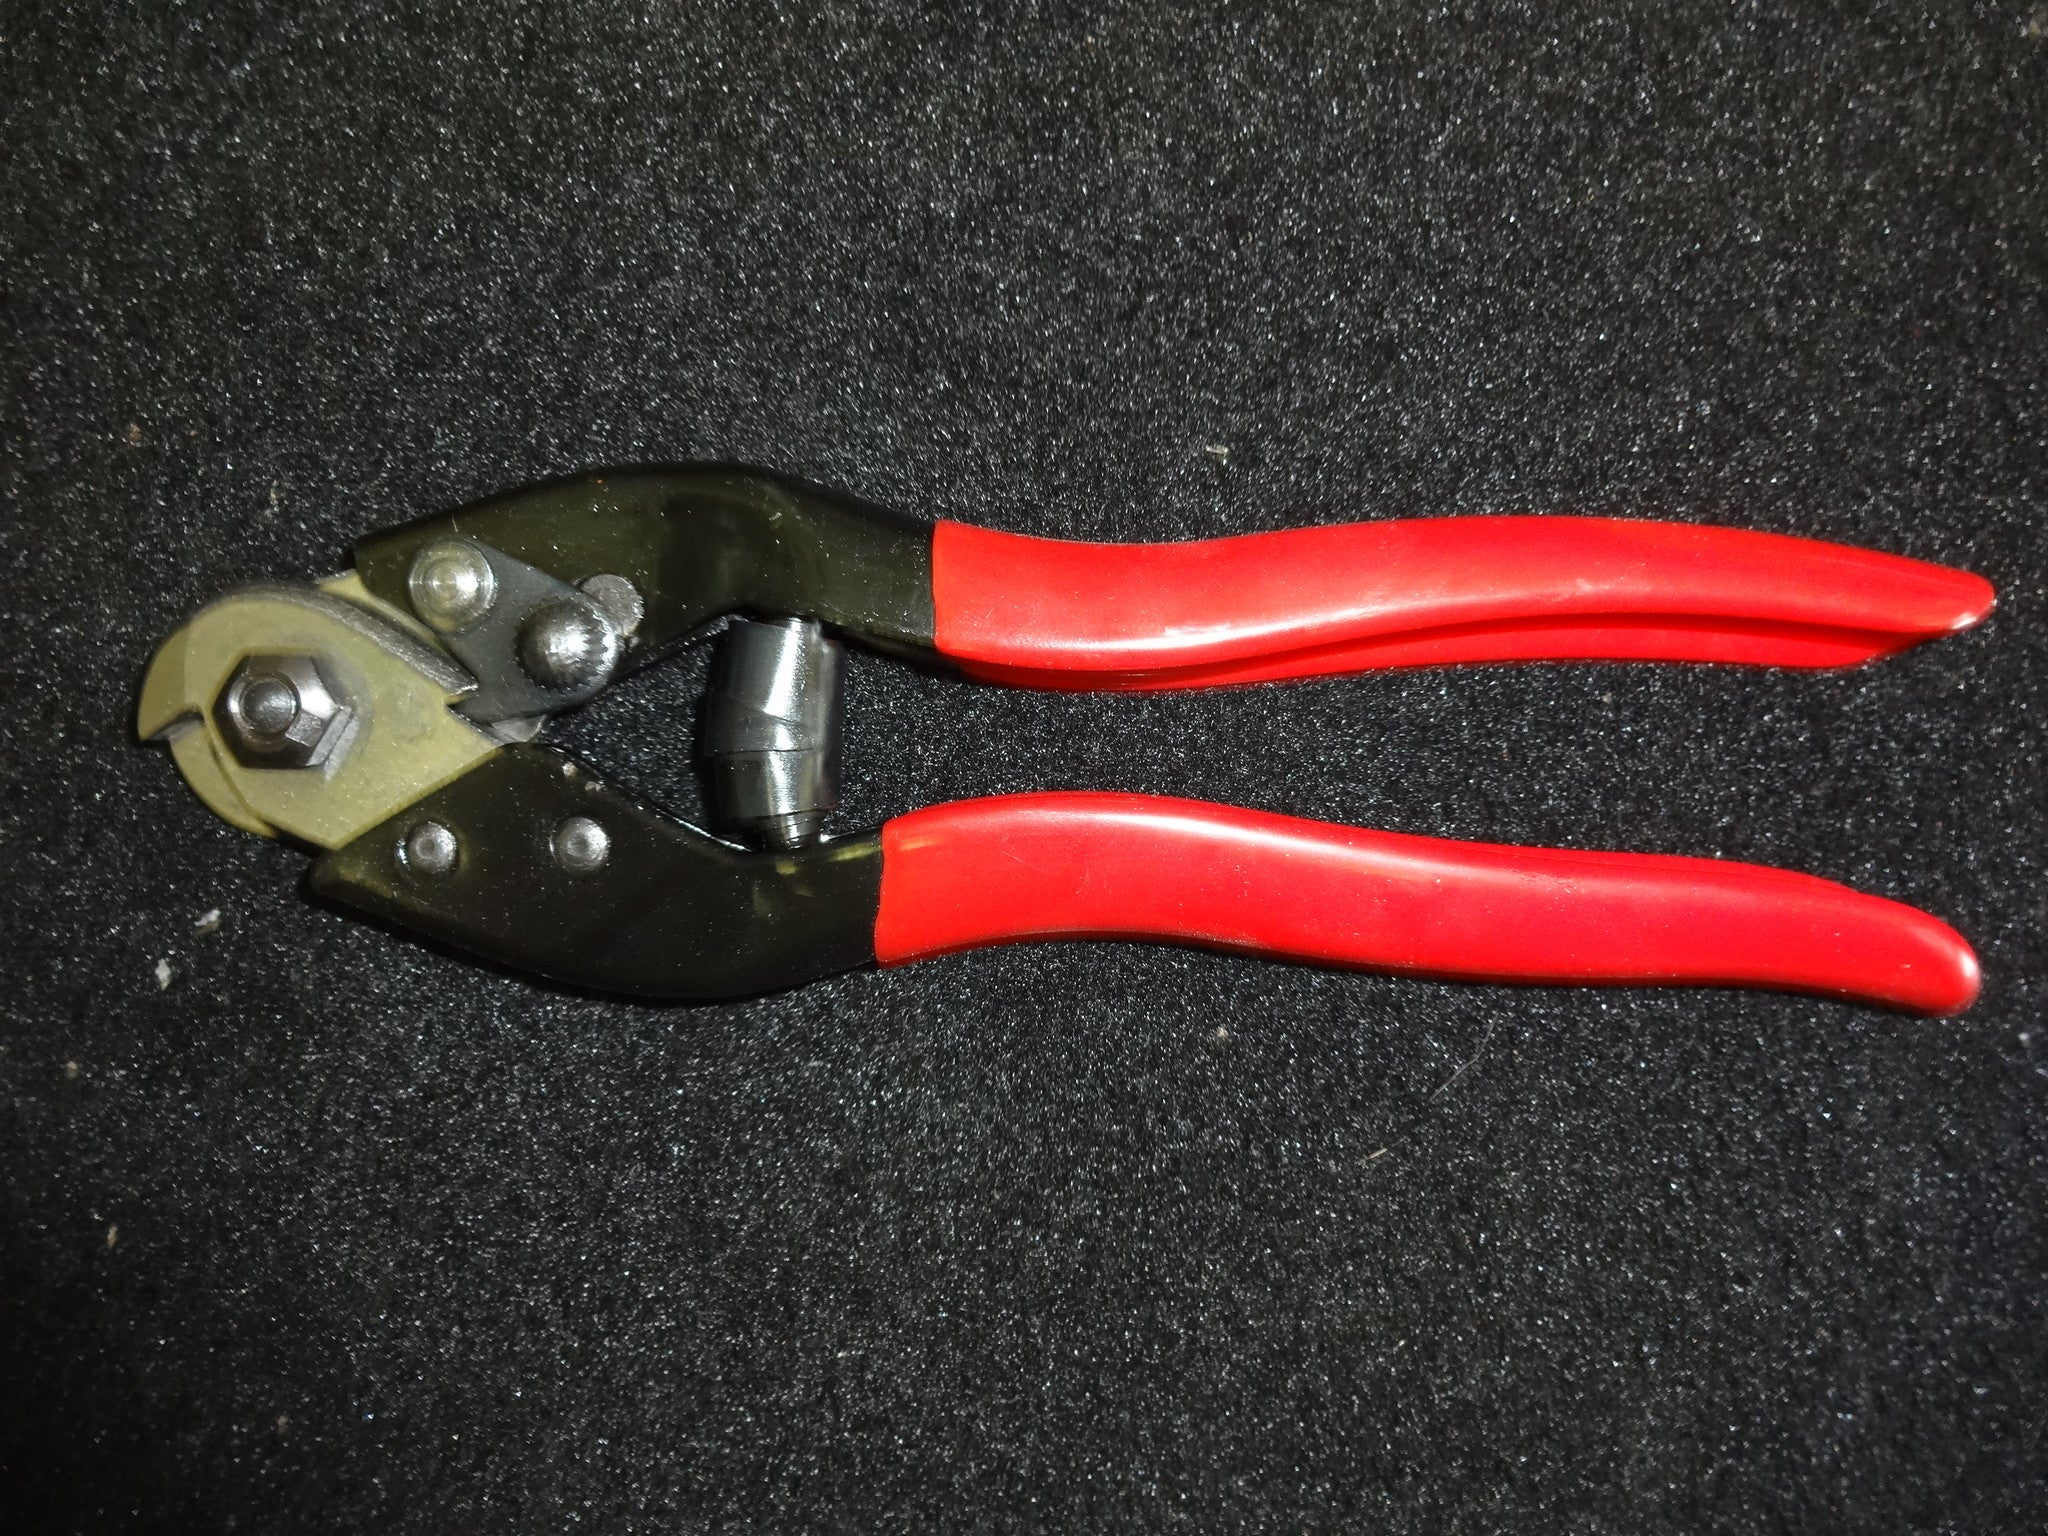 CABLE CUTTERS - Southern Snares & Supply